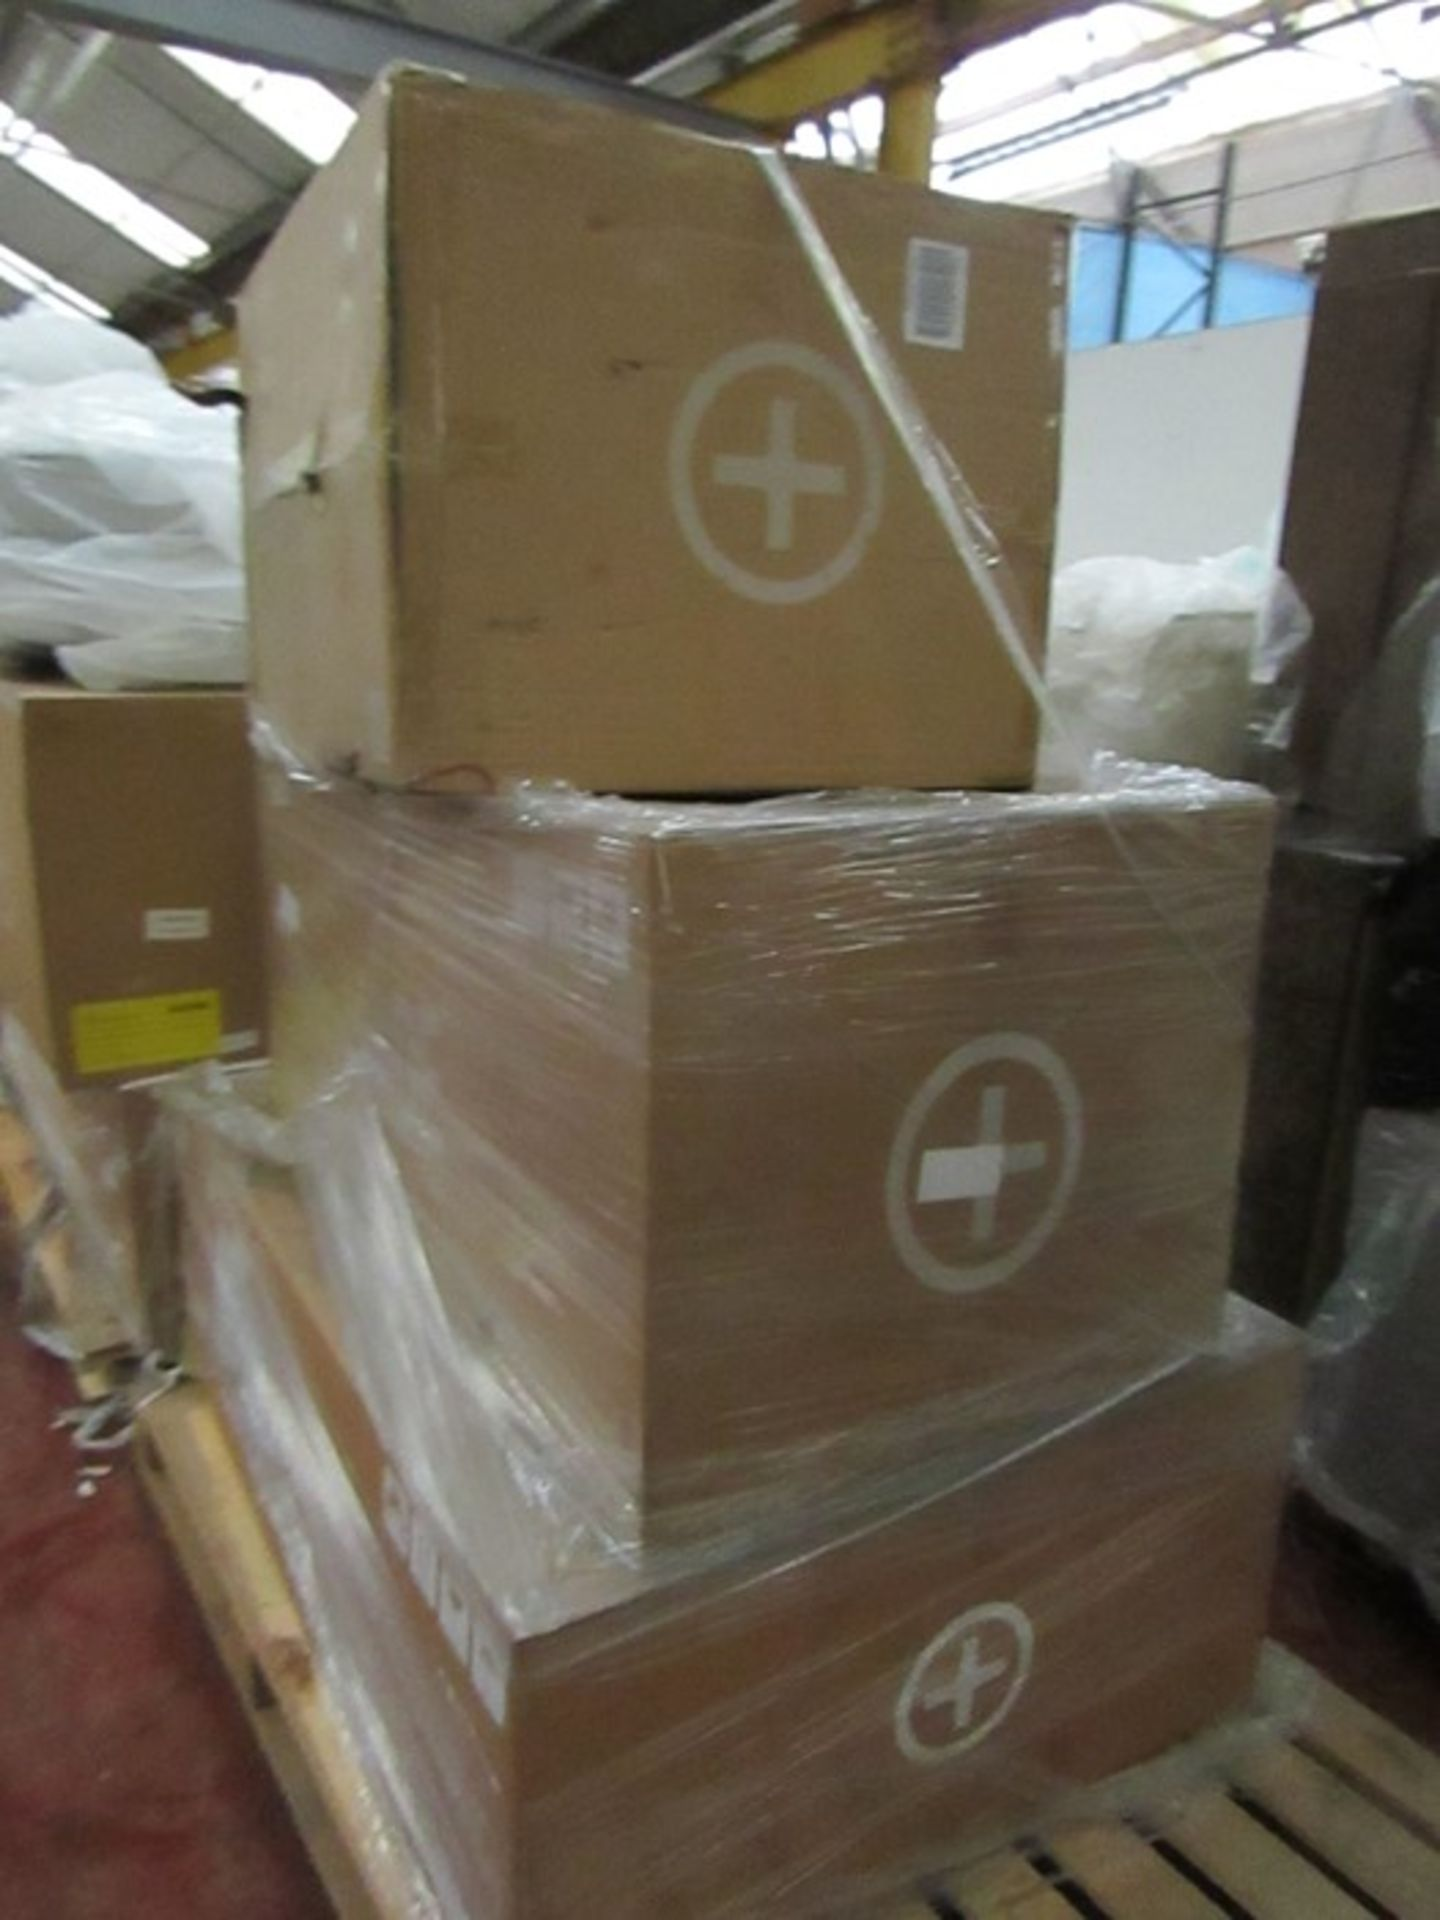   16x   PALLETS OF MADE.COM UNMANIFESTED SOFA PARTS, THESE ARE FROM VARIOUS SOFAS AND DONT APPEAR TO - Image 14 of 34